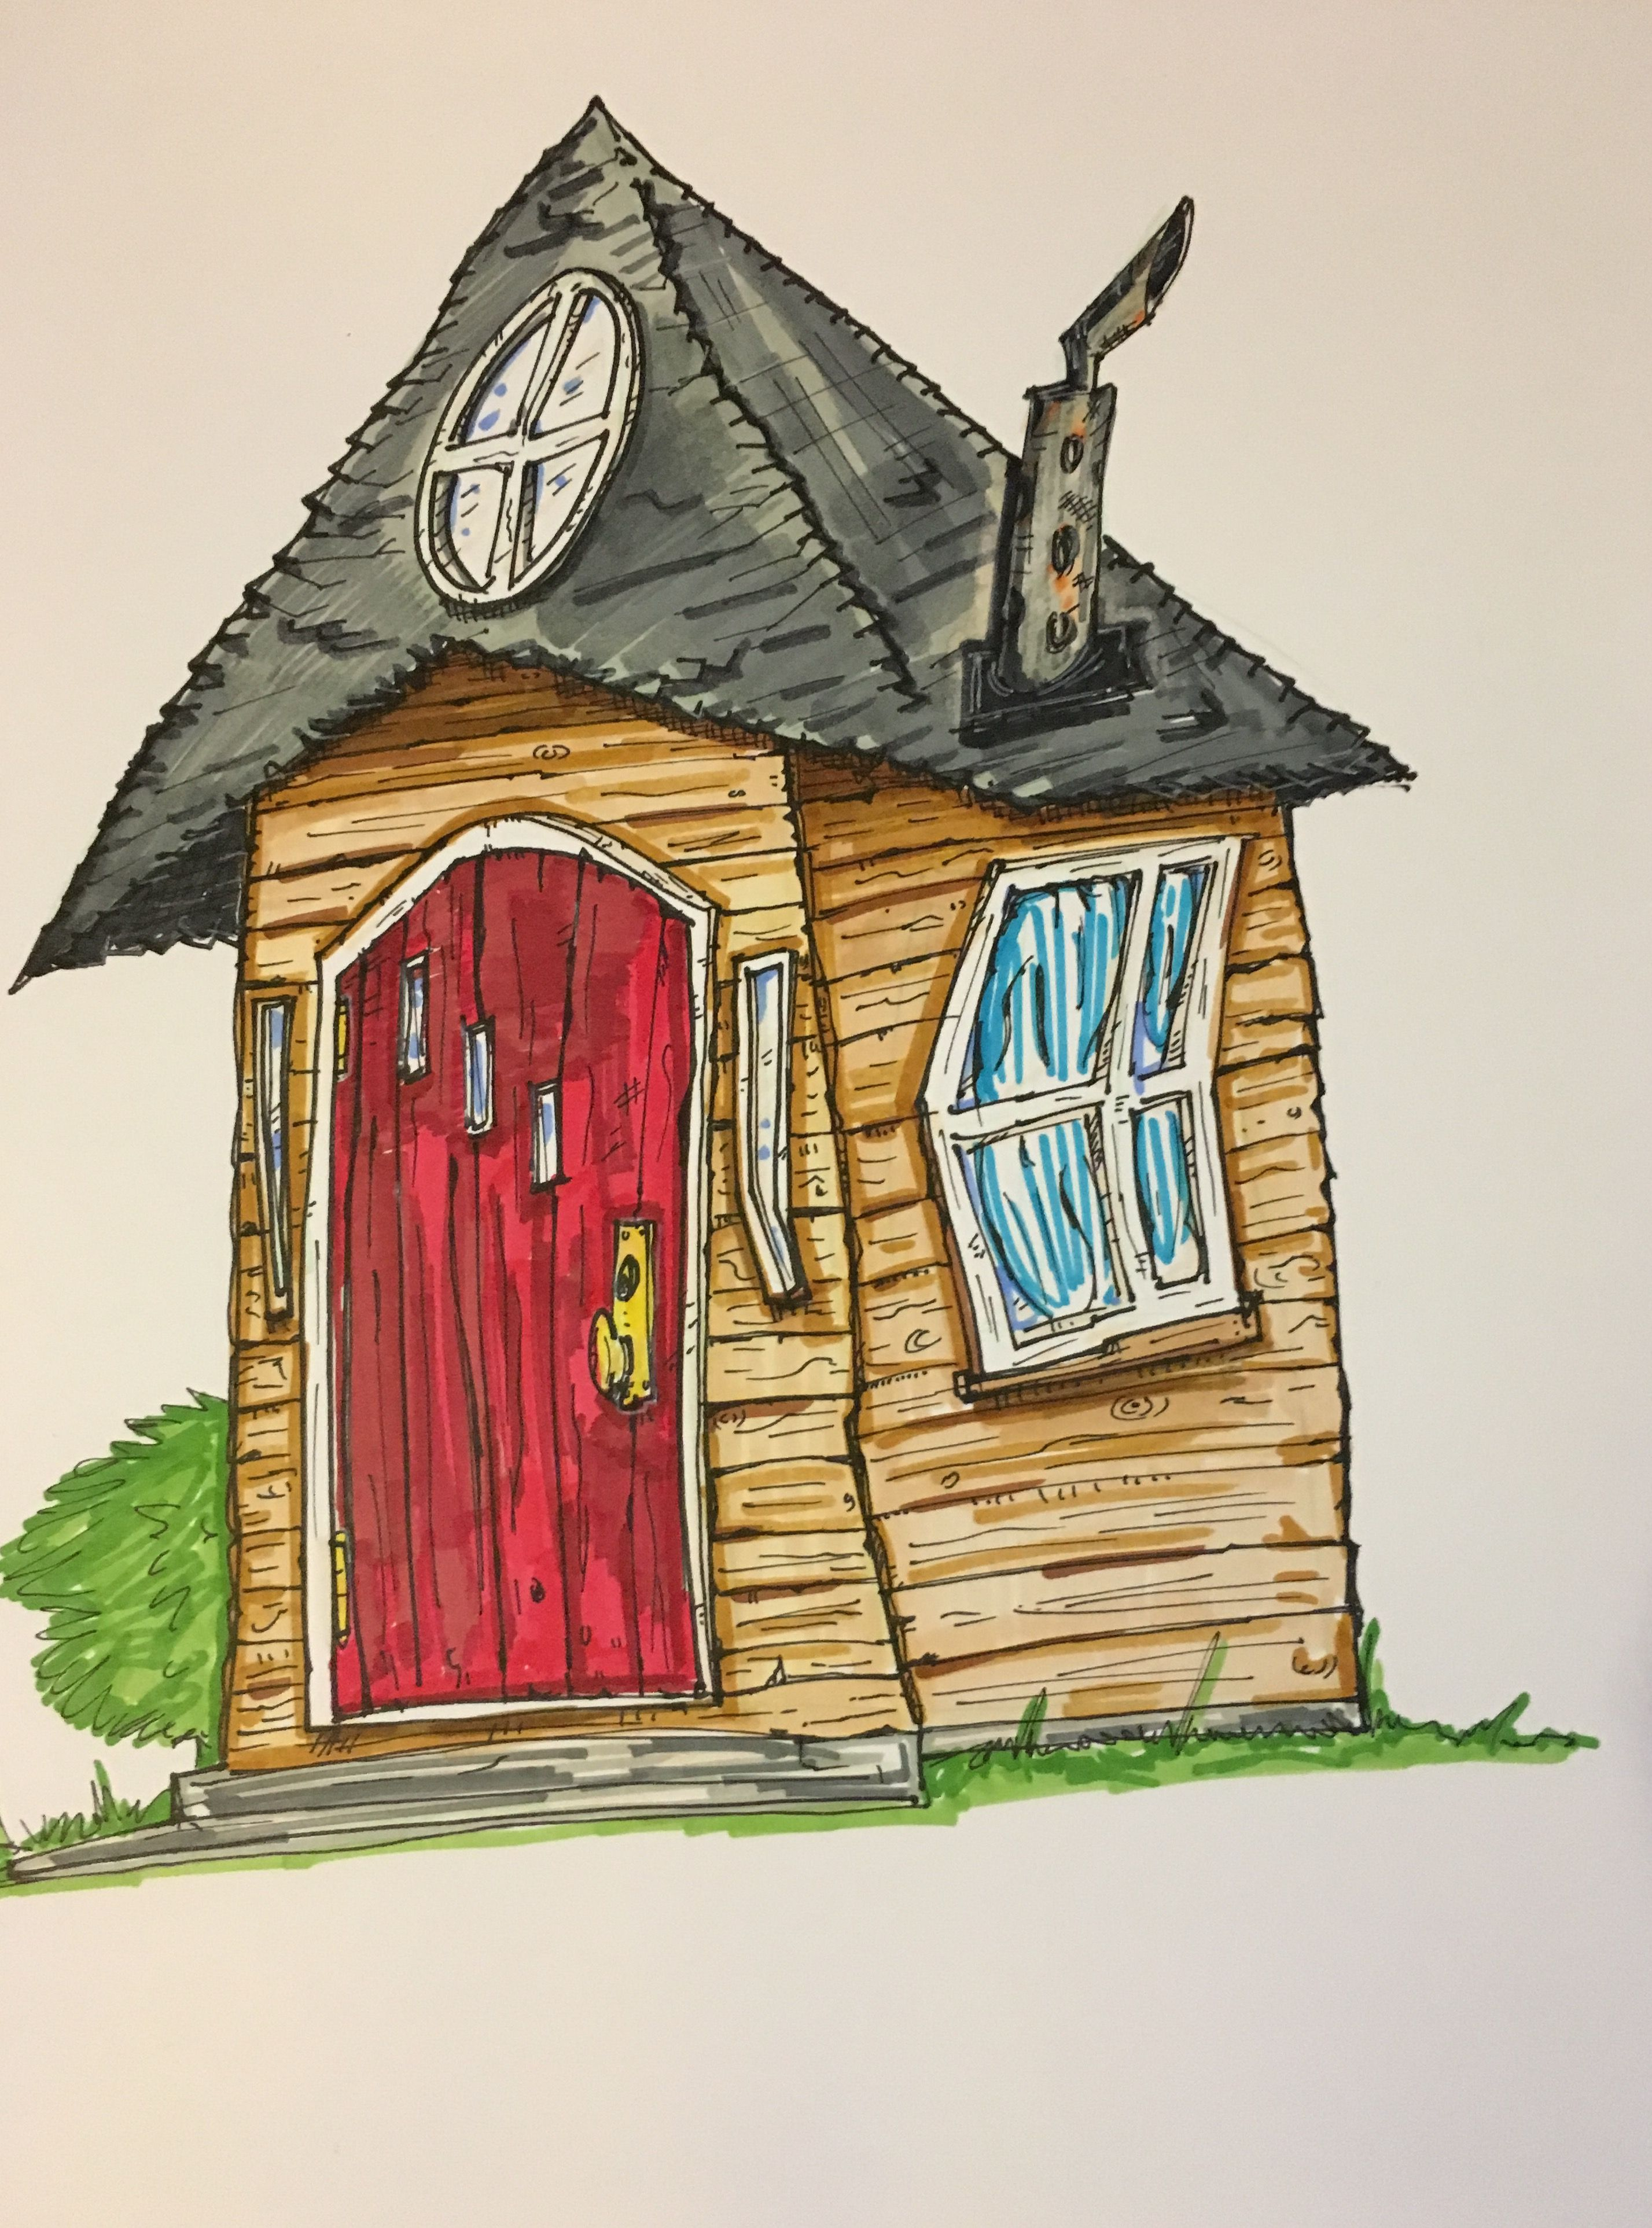 High Quality Tim Burton Style Ole Wooden House Drawing